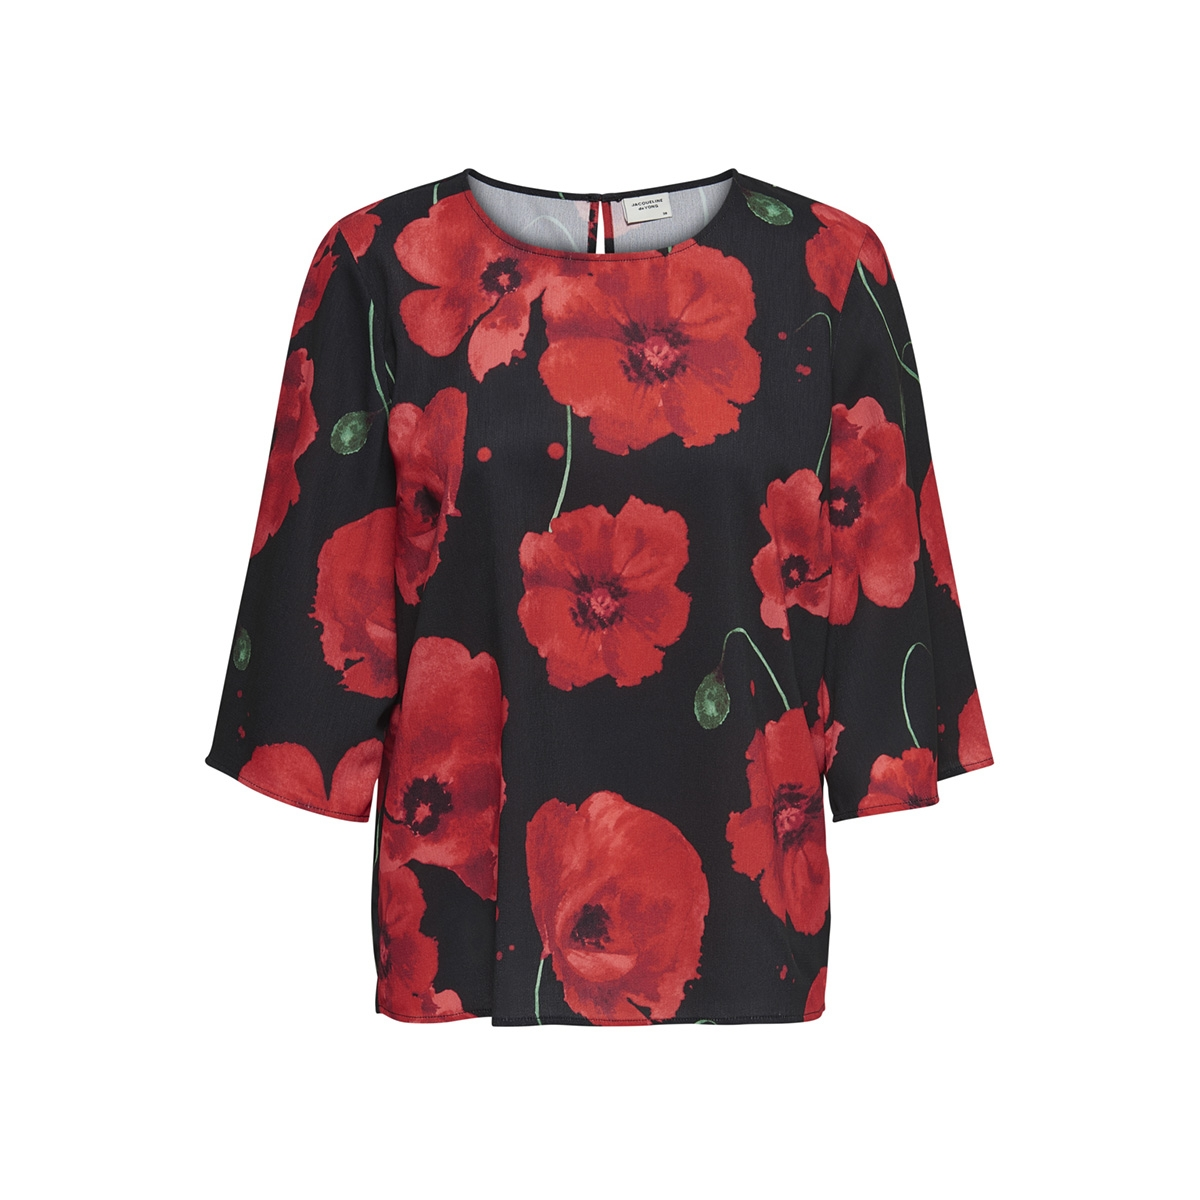 jdyindie 3/4 top wvn 15169581 jacqueline de yong t-shirt black/firey red